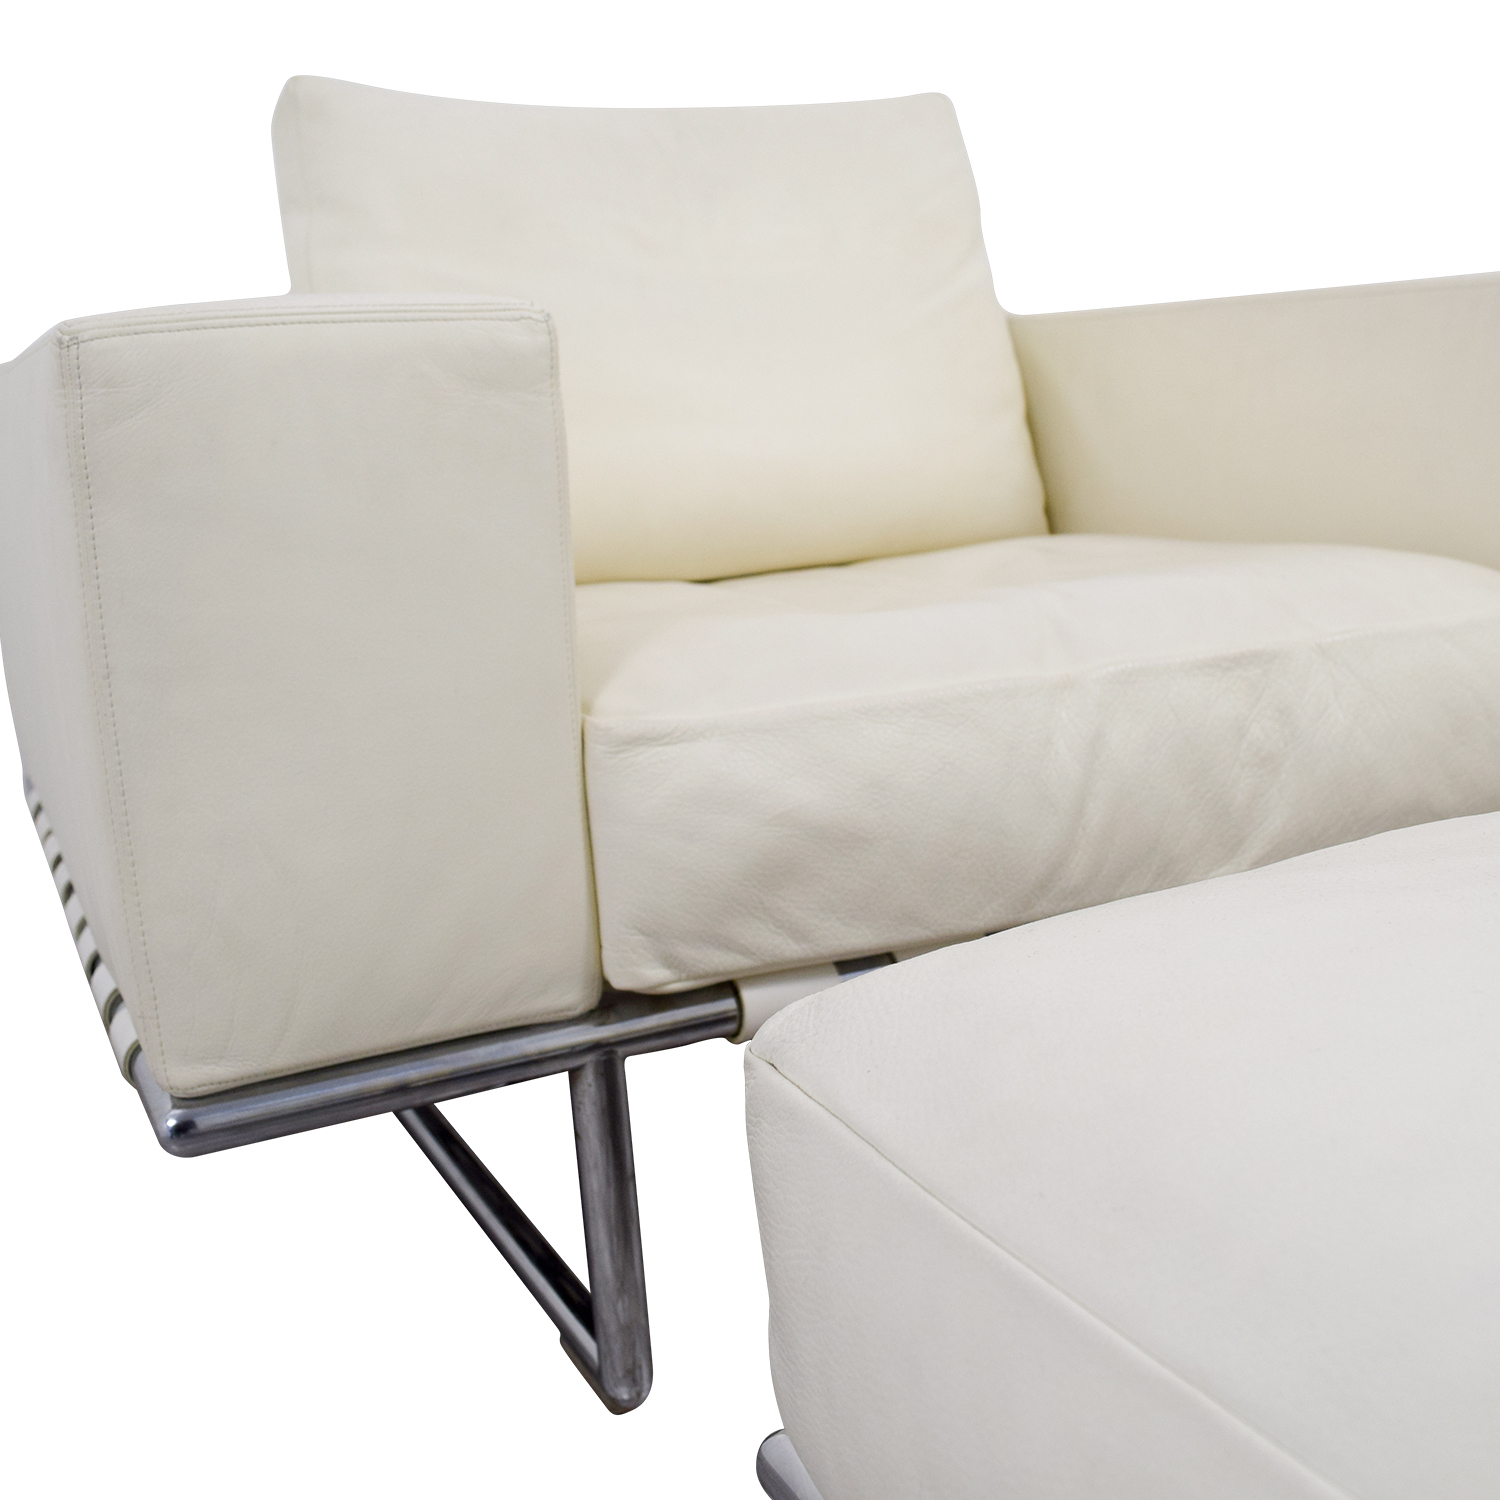 Moura Starr Moura Starr Italian White Leather Chair with Ottoman